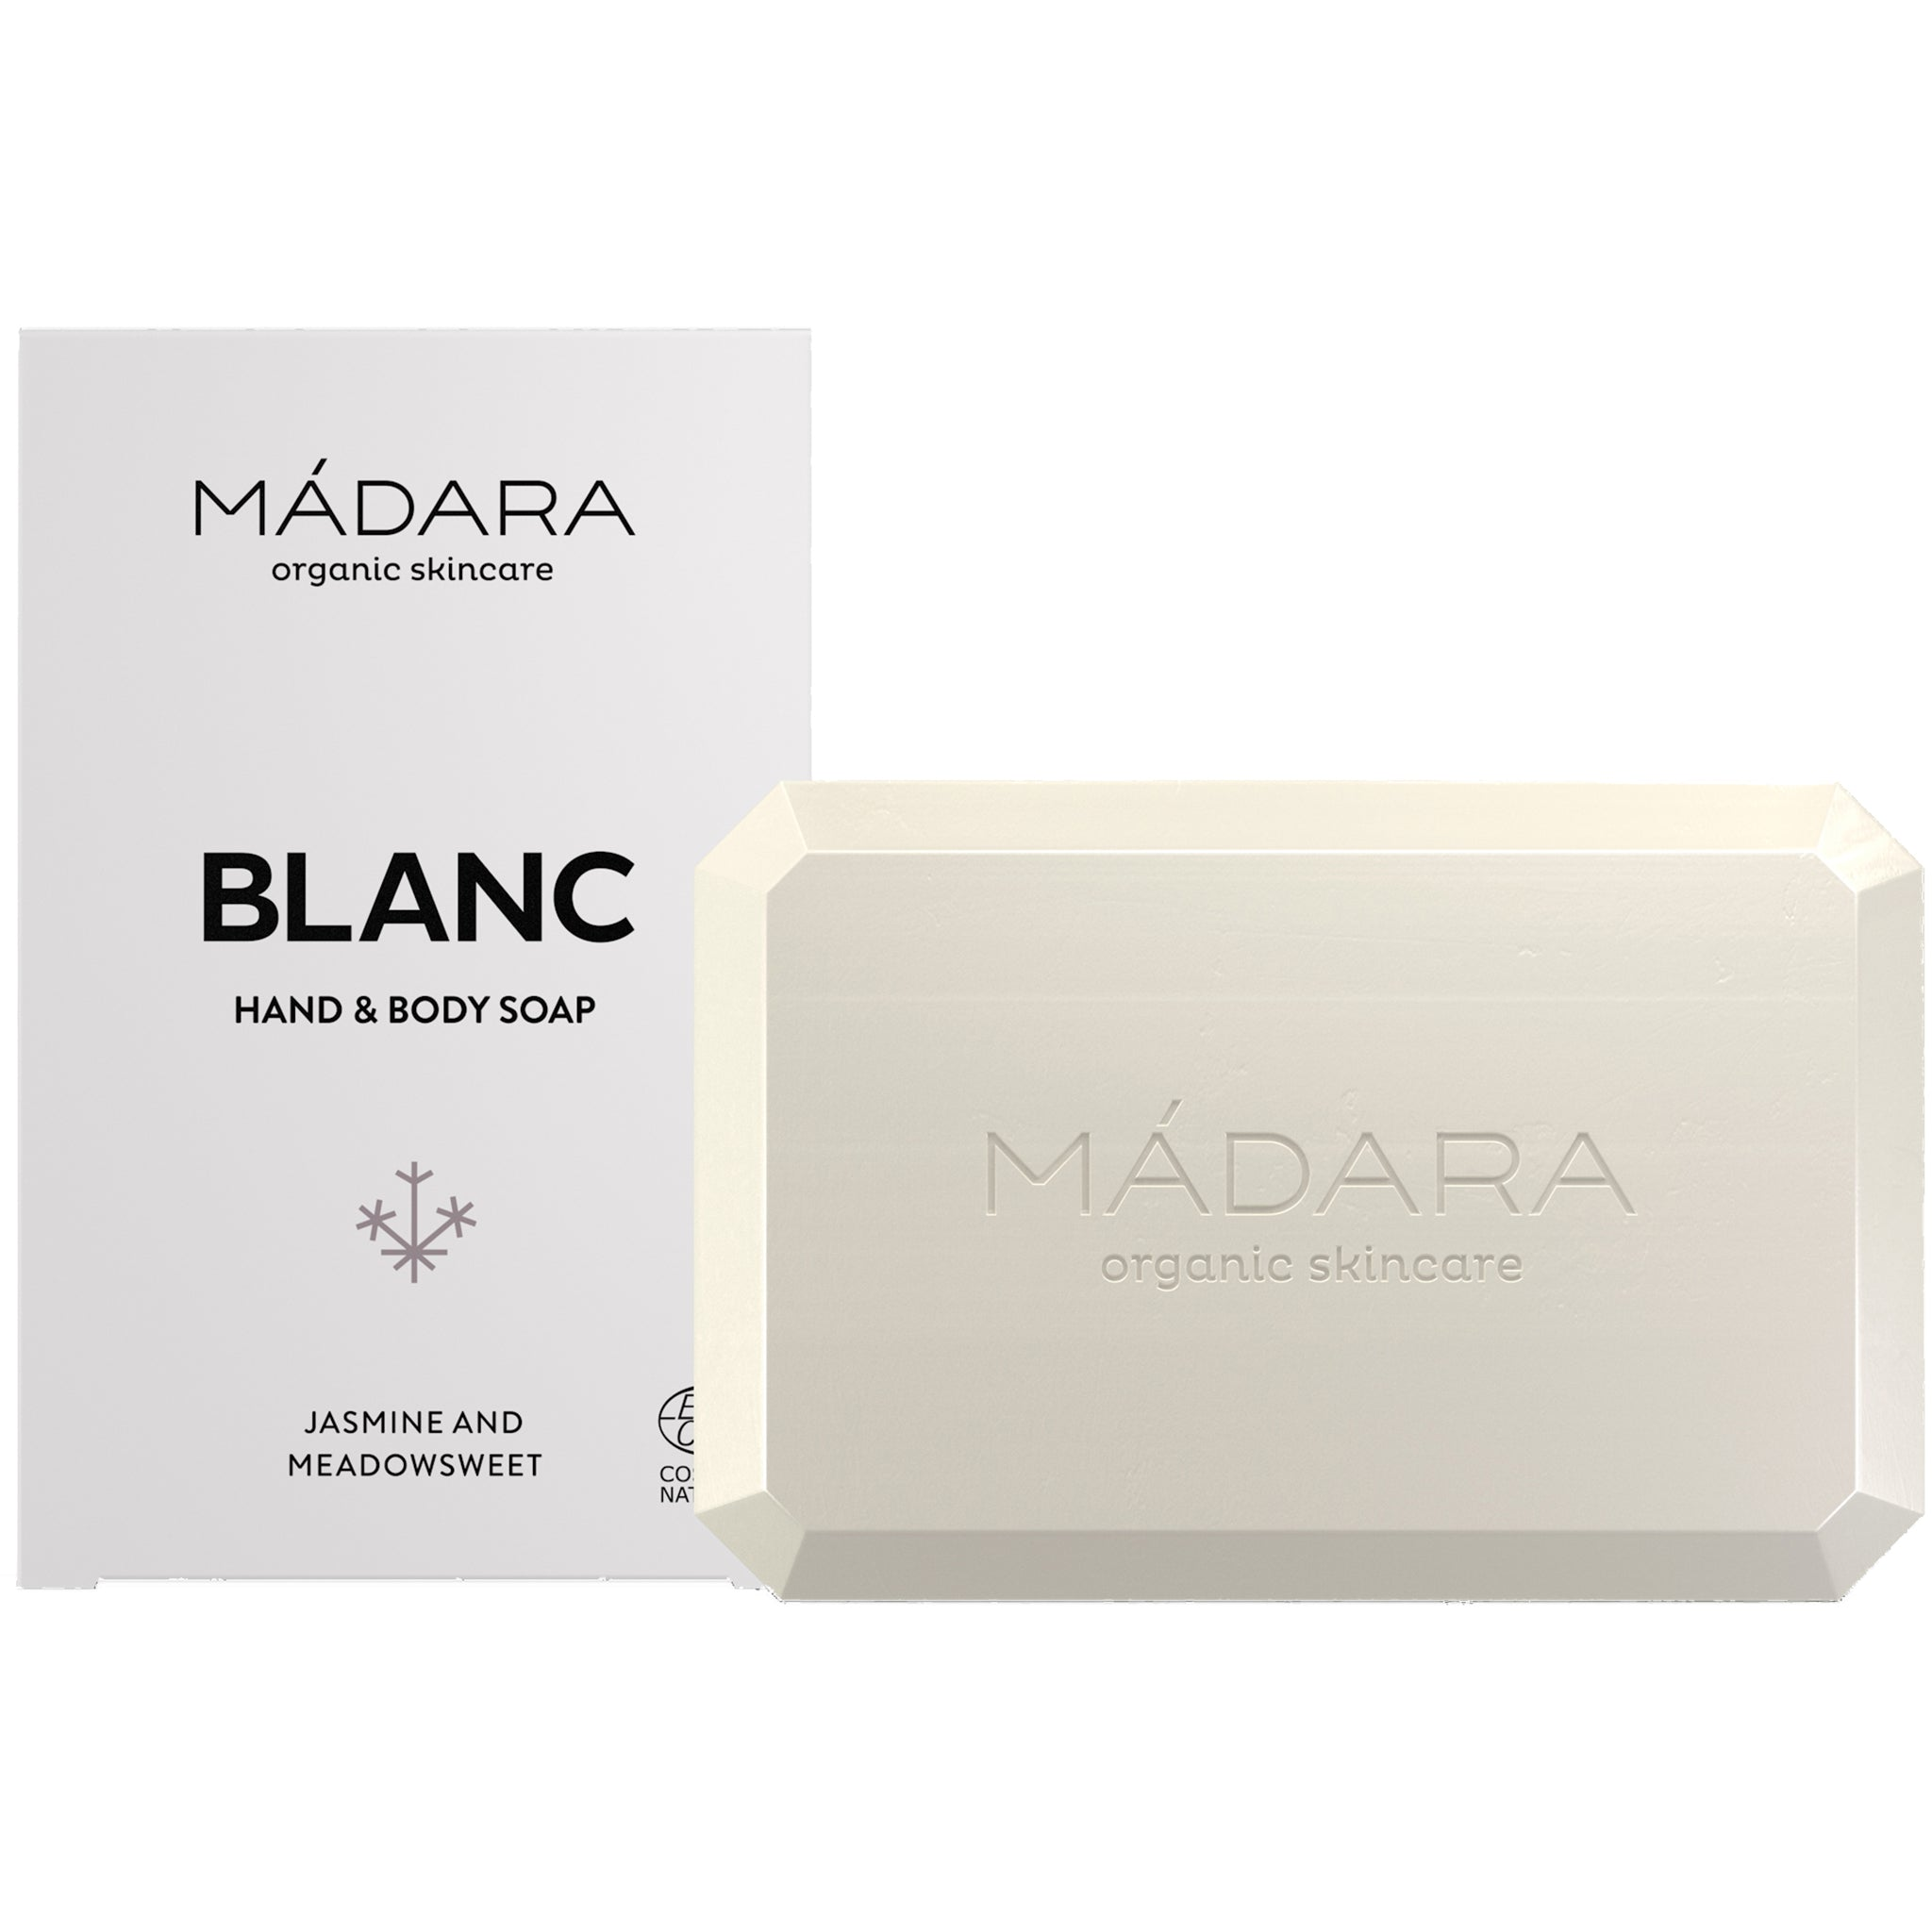 Blanc Hand and Body Soap